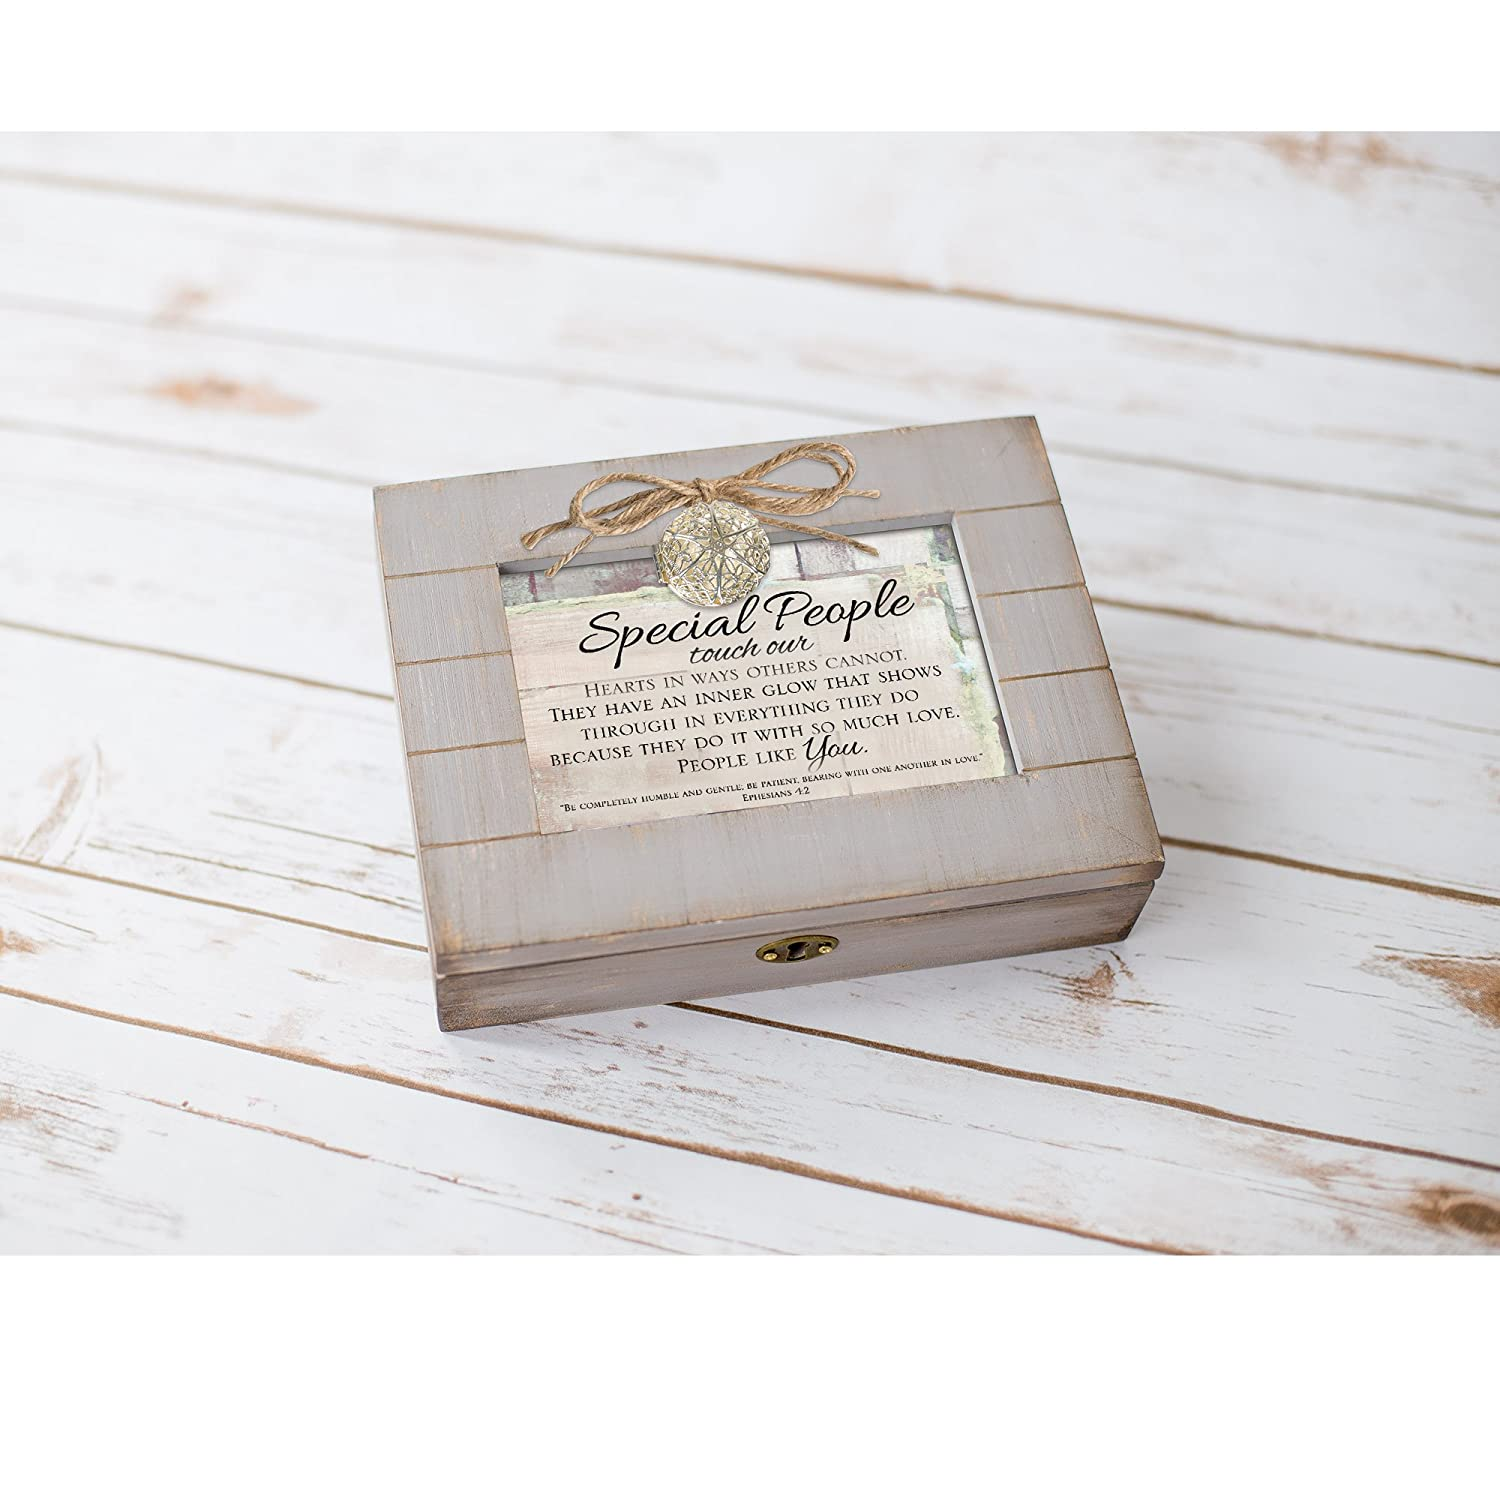 Cottage Garden Special People Touch Our Hearts Grey Distressed Locket Music Box Plays Amazing Grace